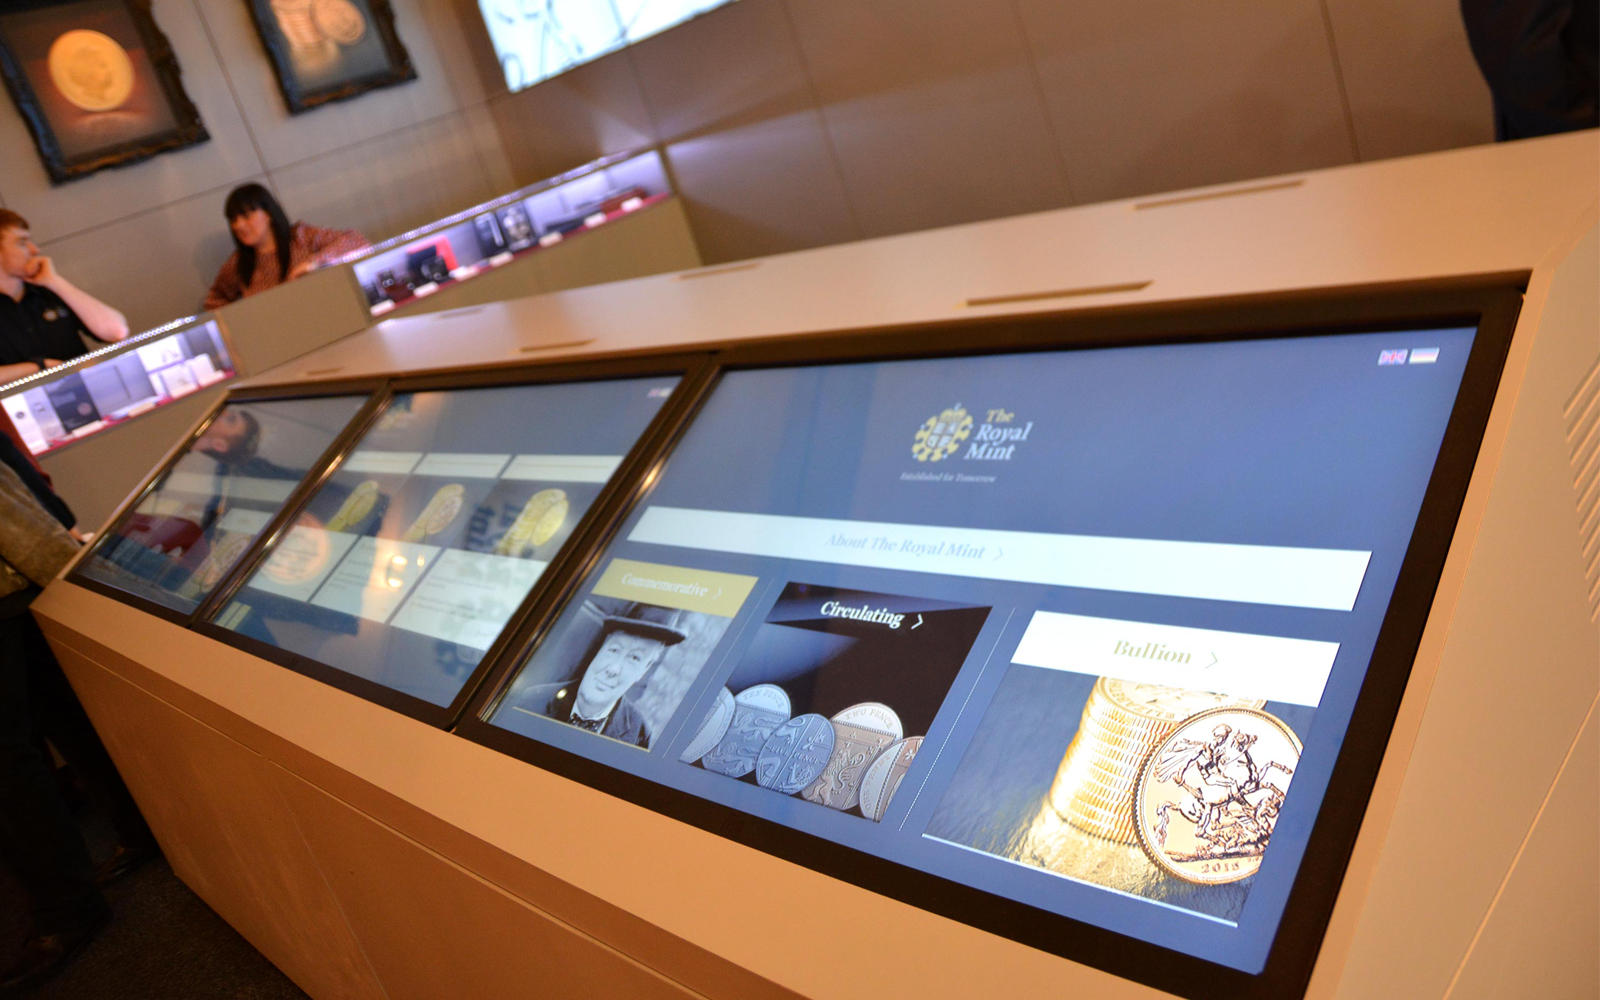 man and women interacting with The Royal Mint interactive touchscreen display software shown on large monitors